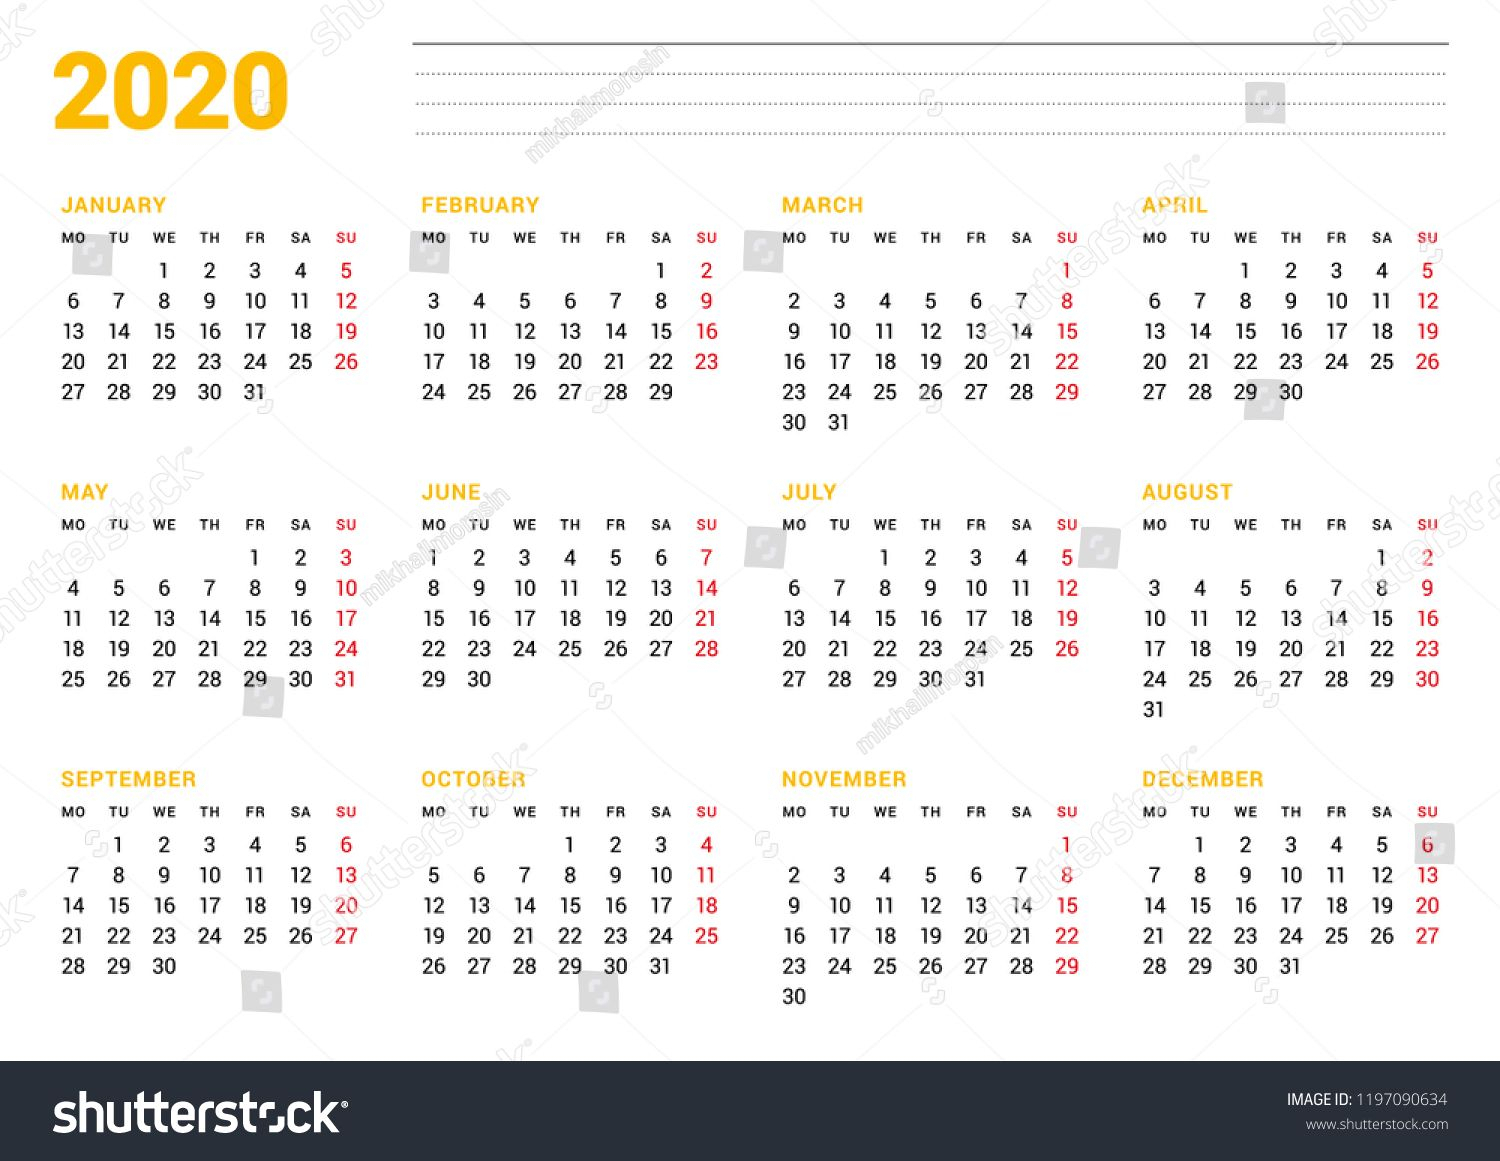 Get 2020 Calendar That Starts With Monday | Calendar